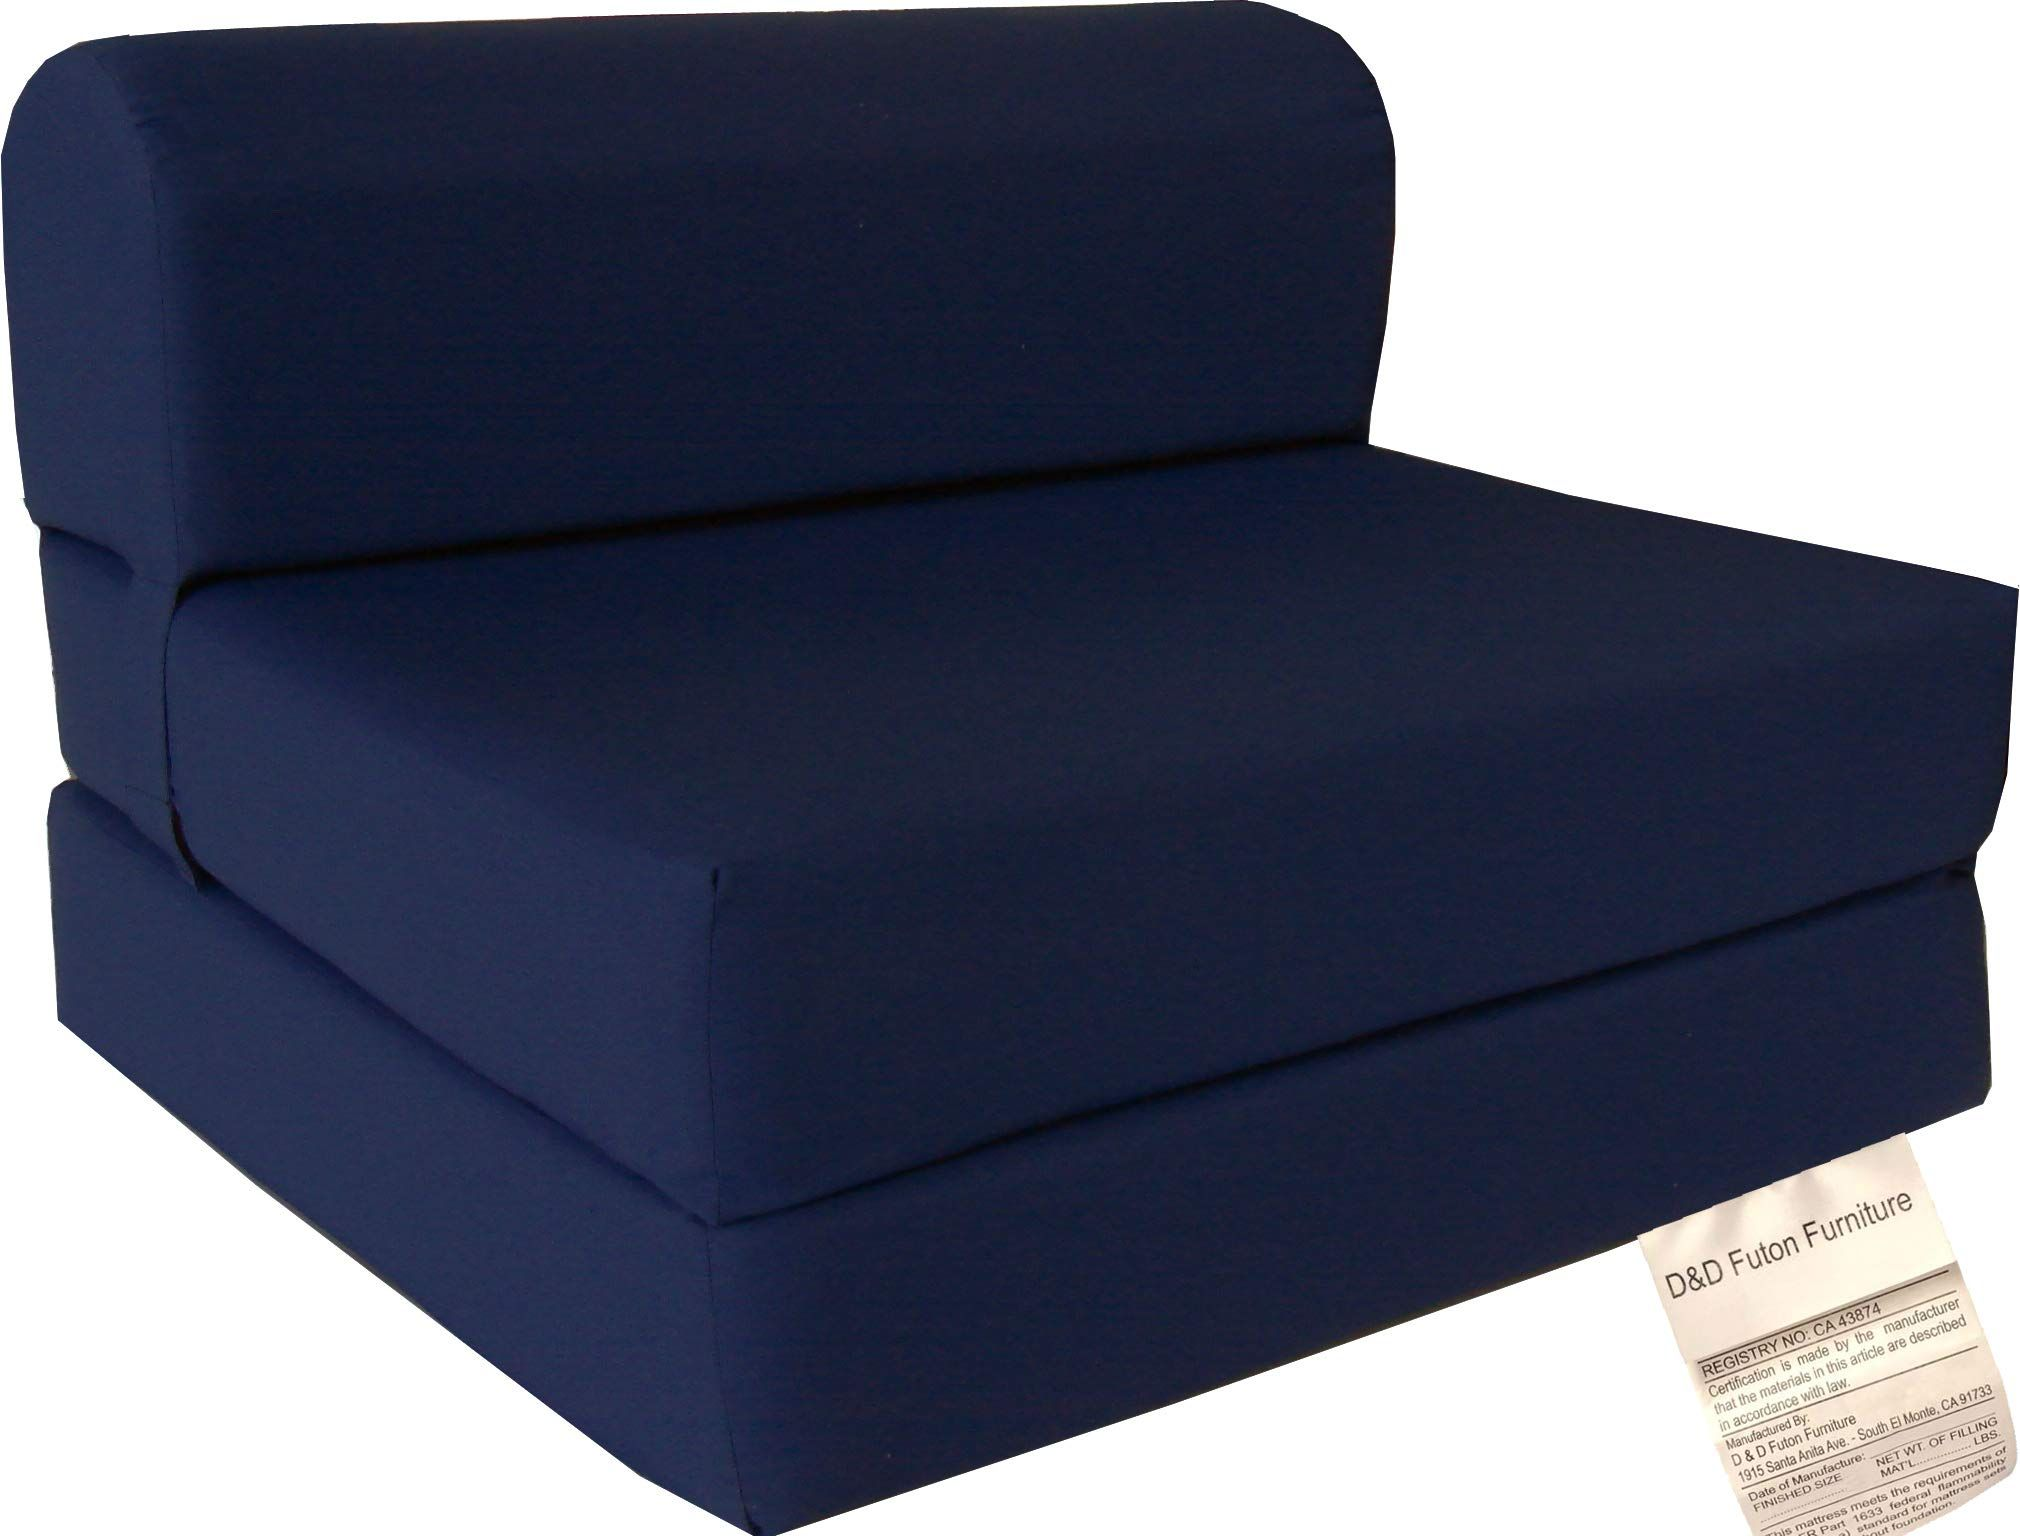 Flip Chair Bed In 2020 Foam Sofa Chair Sofa Bed Cool Chairs